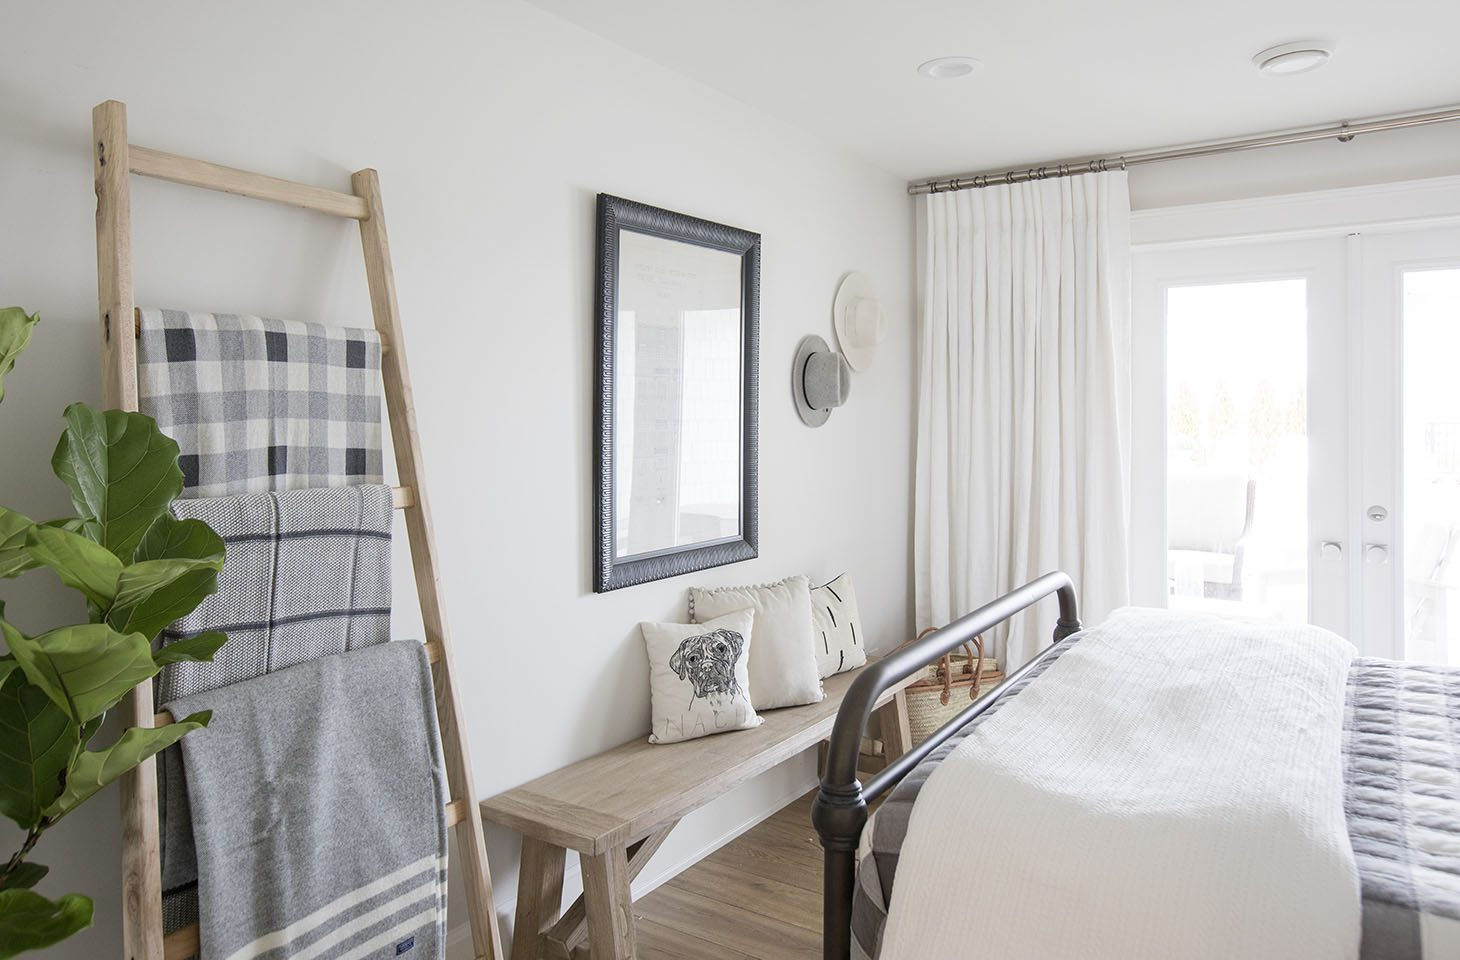 Jillian Harris Home Tour Series Spare Bathroom and Bedroom